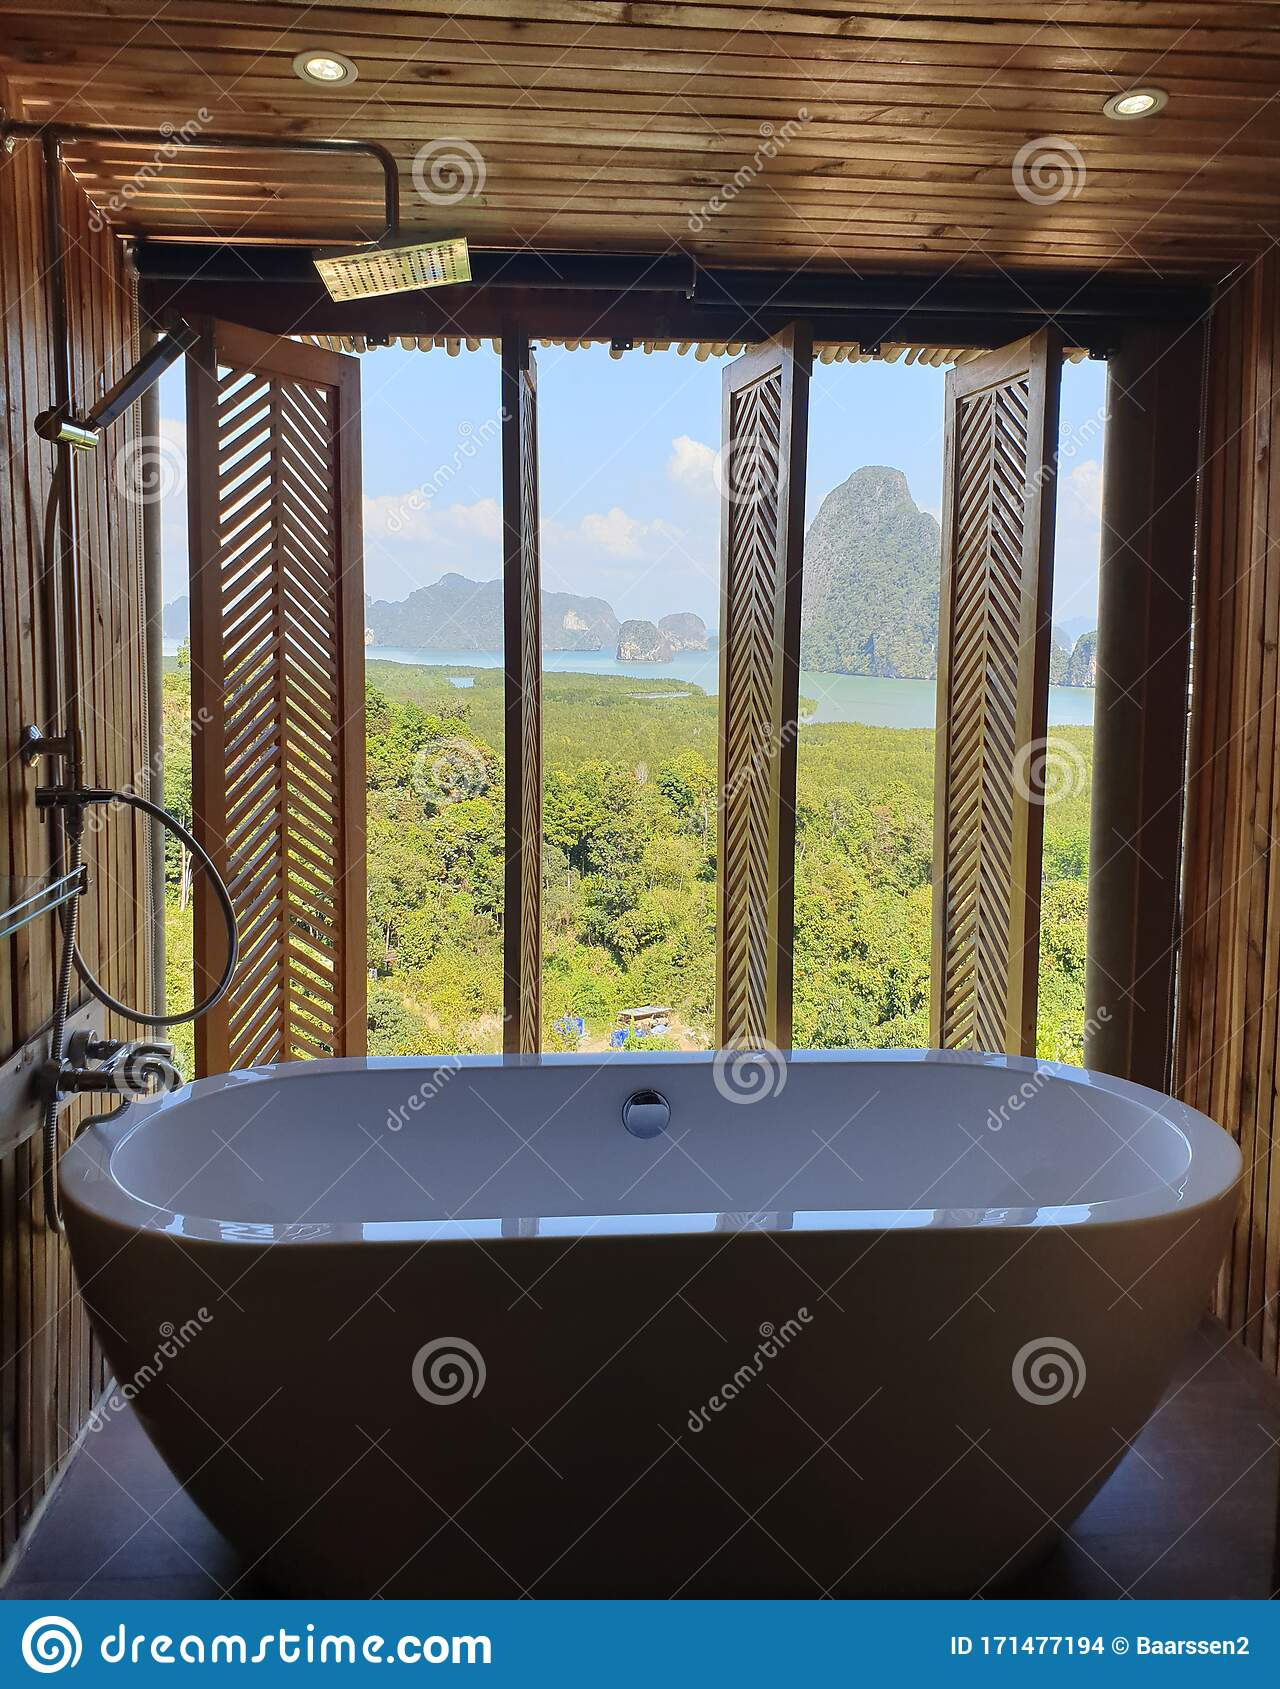 Luxury Bathroom Looking Out Over The Ocean Of Phangnga Bay Thailand Bath Tub In Wooden Room Stock Photo Image Of Design Shiny 171477194